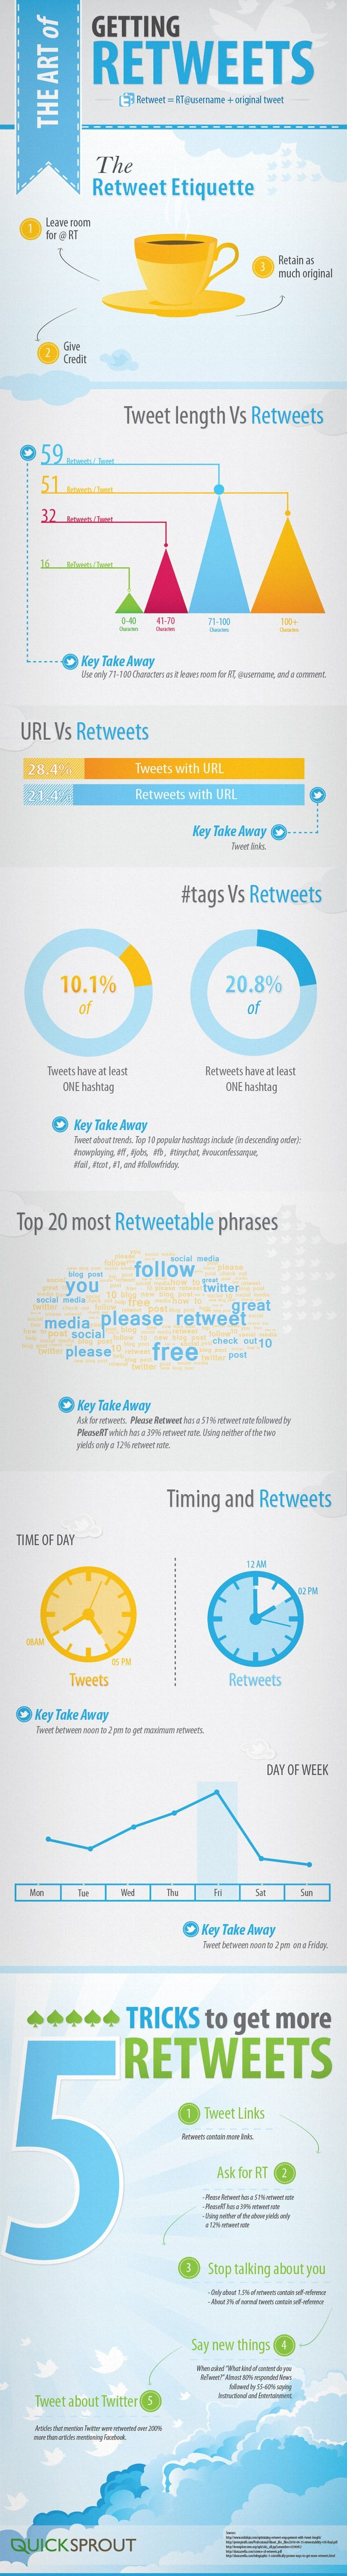 The art of  getting more retweets #infographic